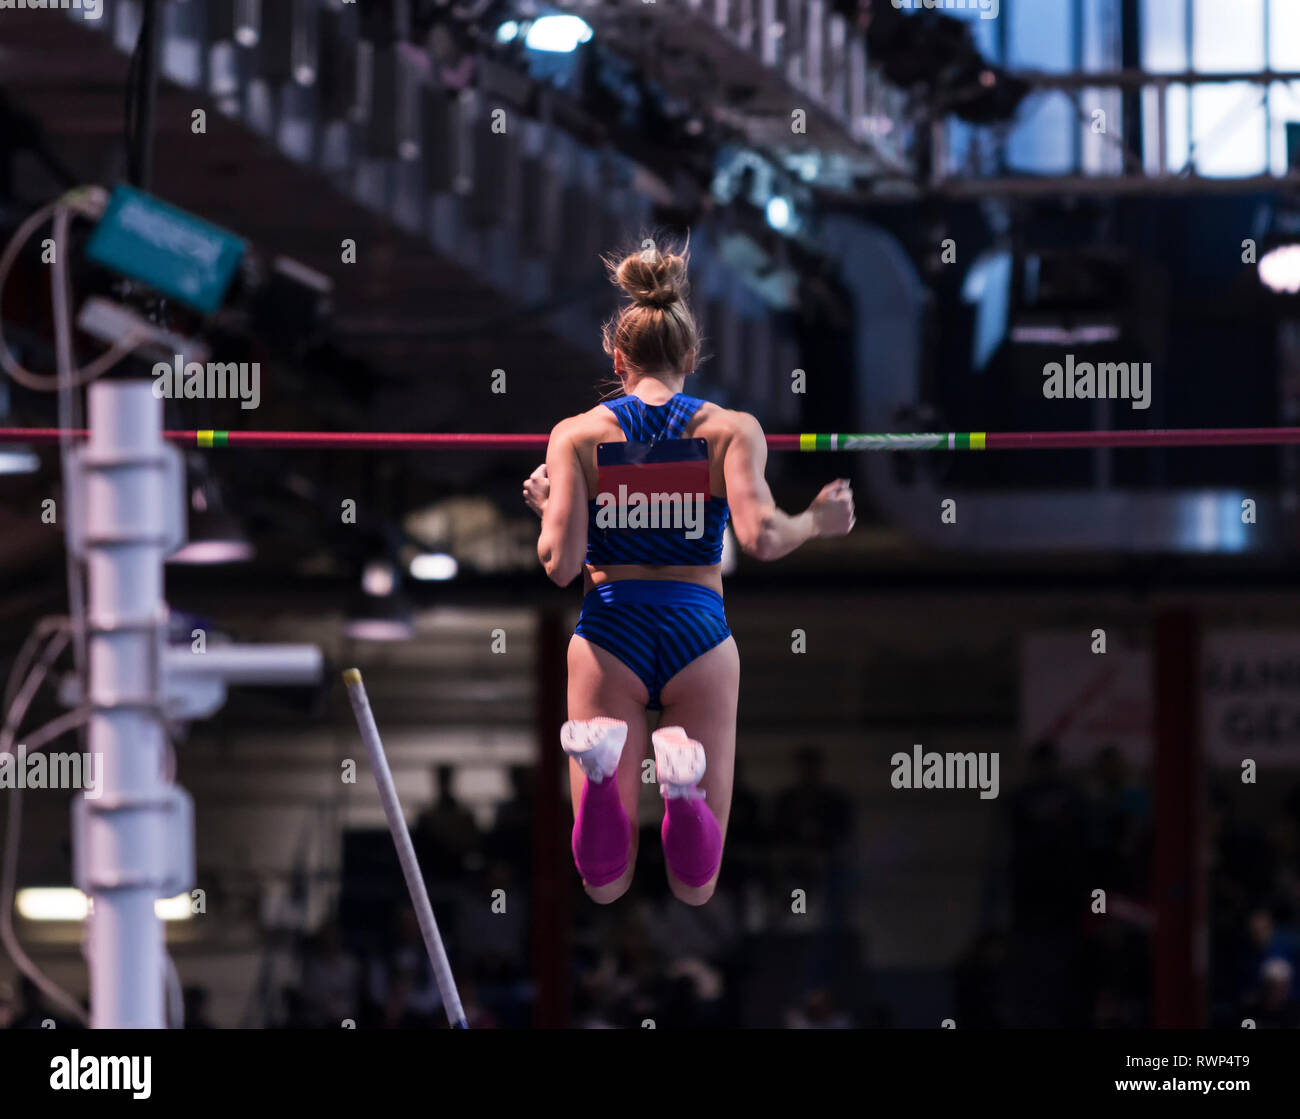 A female pole vaulter falling in the air after clearing a height in a pole vault competition, from behind. - Stock Image